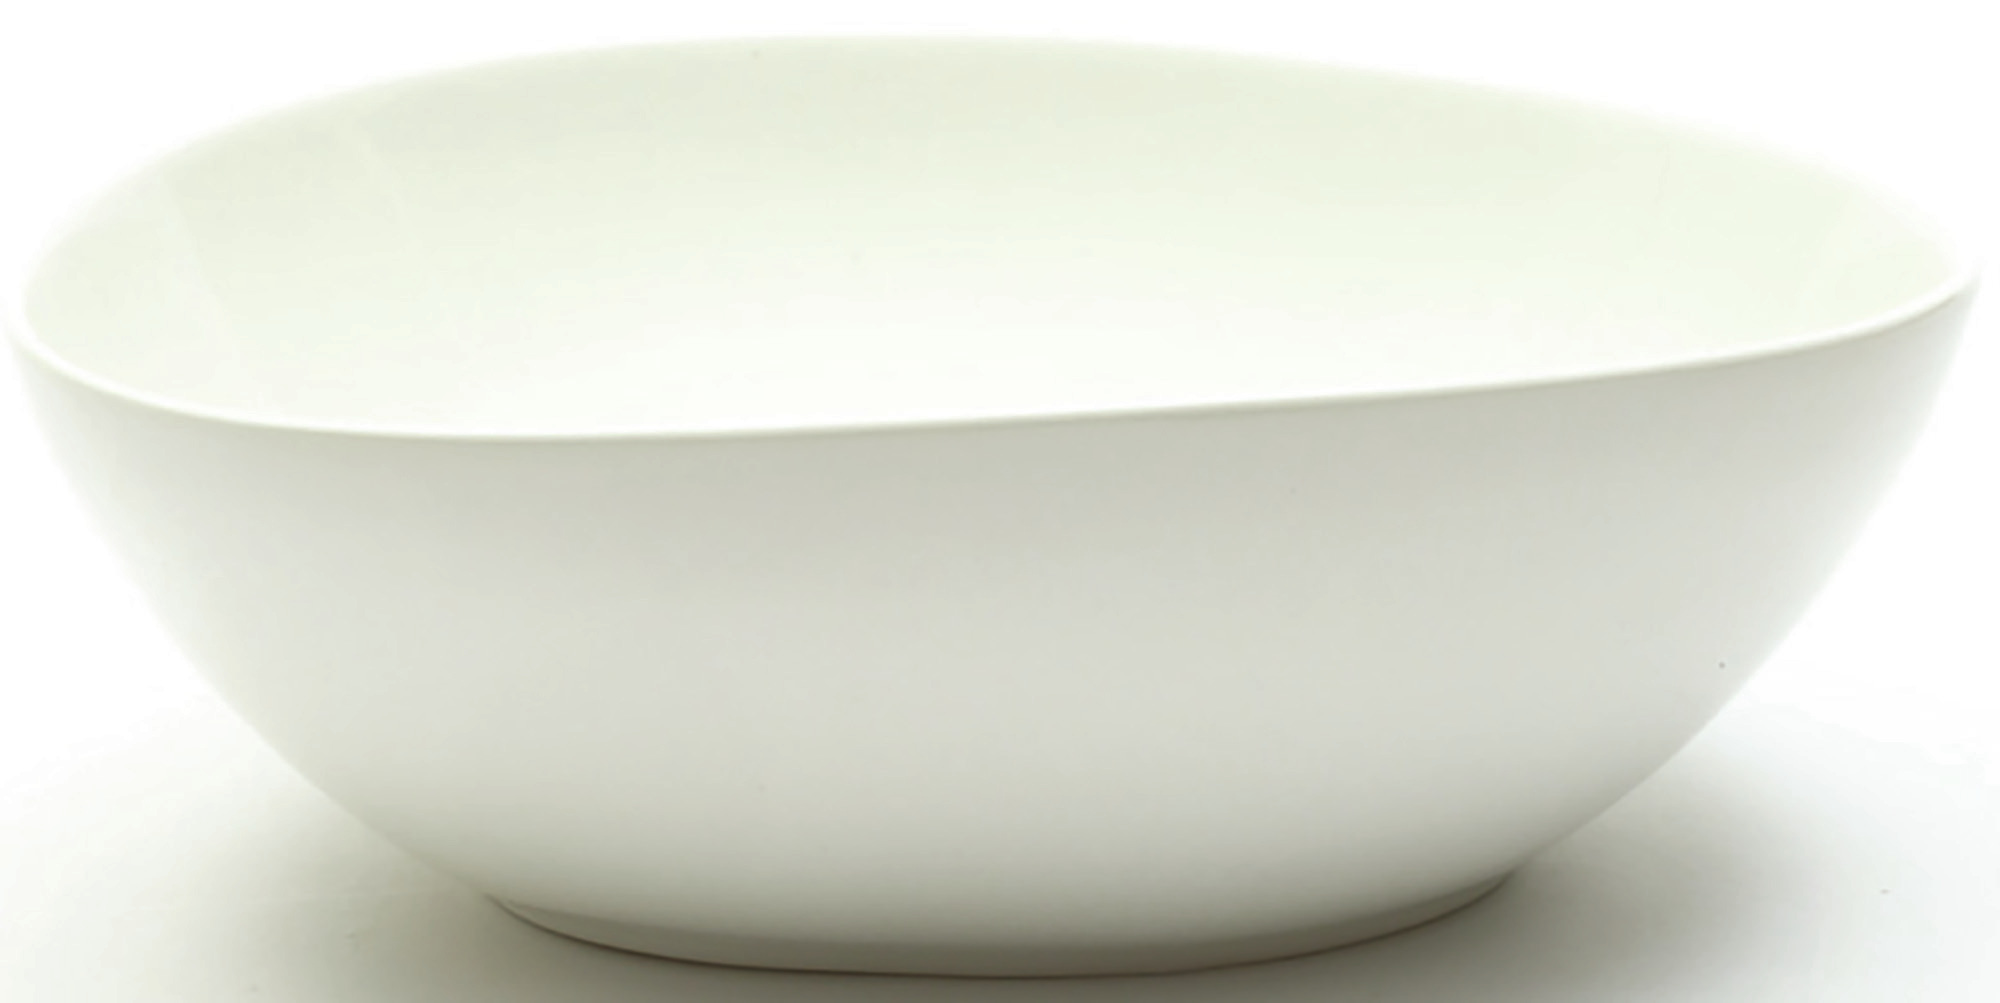 Maxwell & Williams White Basics Olso Oval Bowl